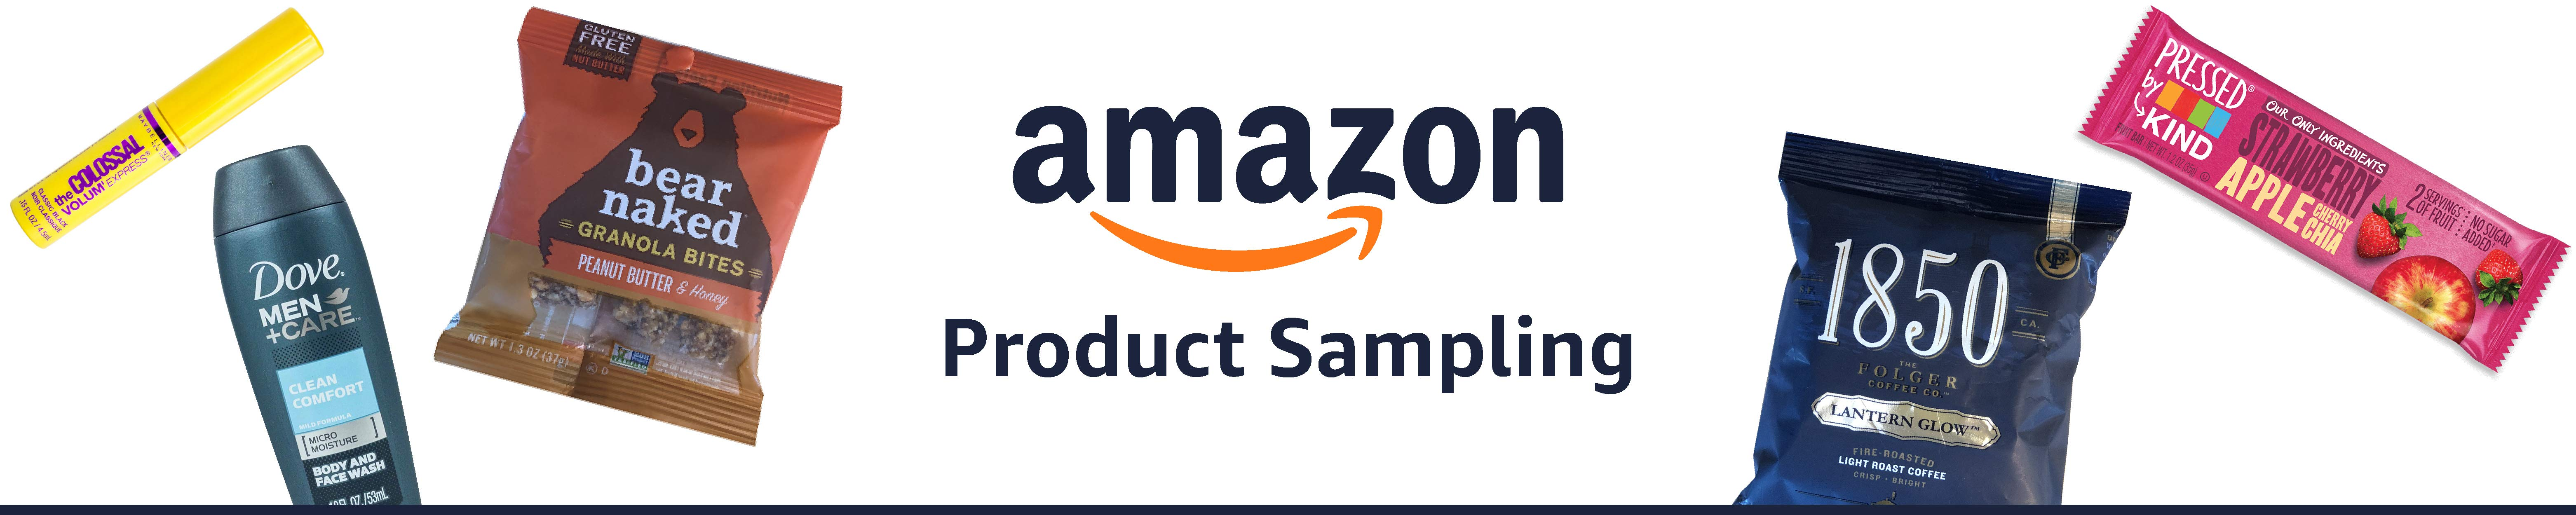 Receive FREE Samples from Amaz...